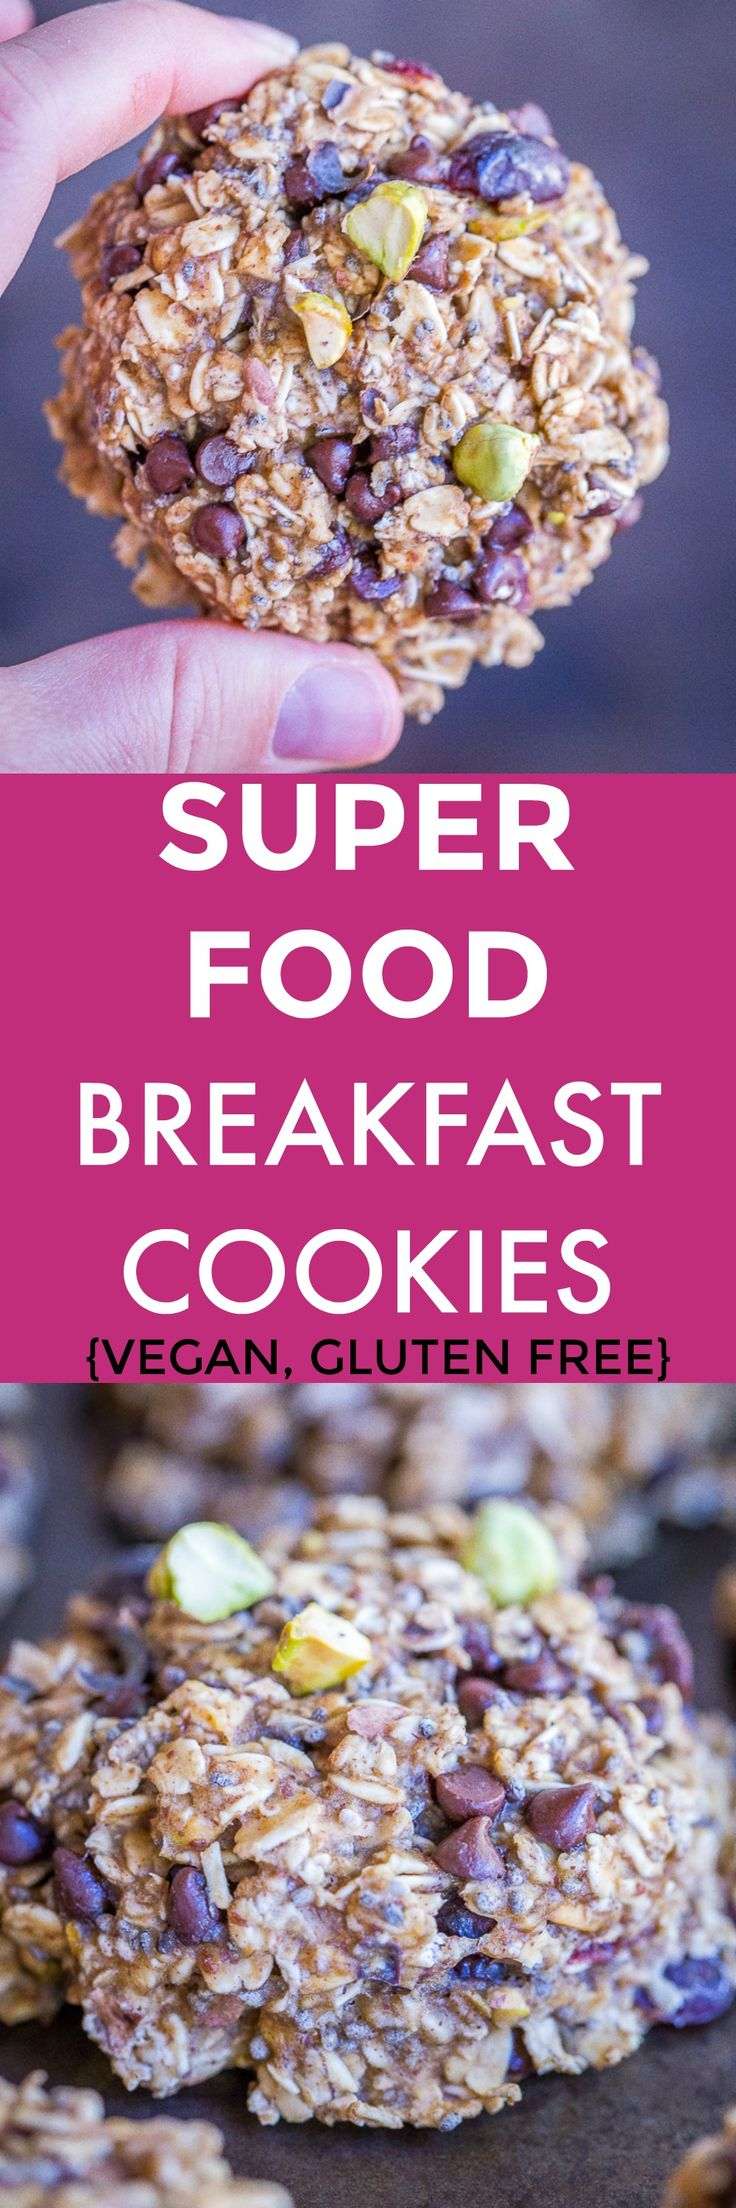 Superfood Breakfast Cookies - These easy make ahead breakfast cookies are packed with lots of healthy superfoods!  Make a batch and have them on hand for an easy breakfast or snack all week long!  #Glutenfree #Vegan #Healthy #MealPrep #Breakfast